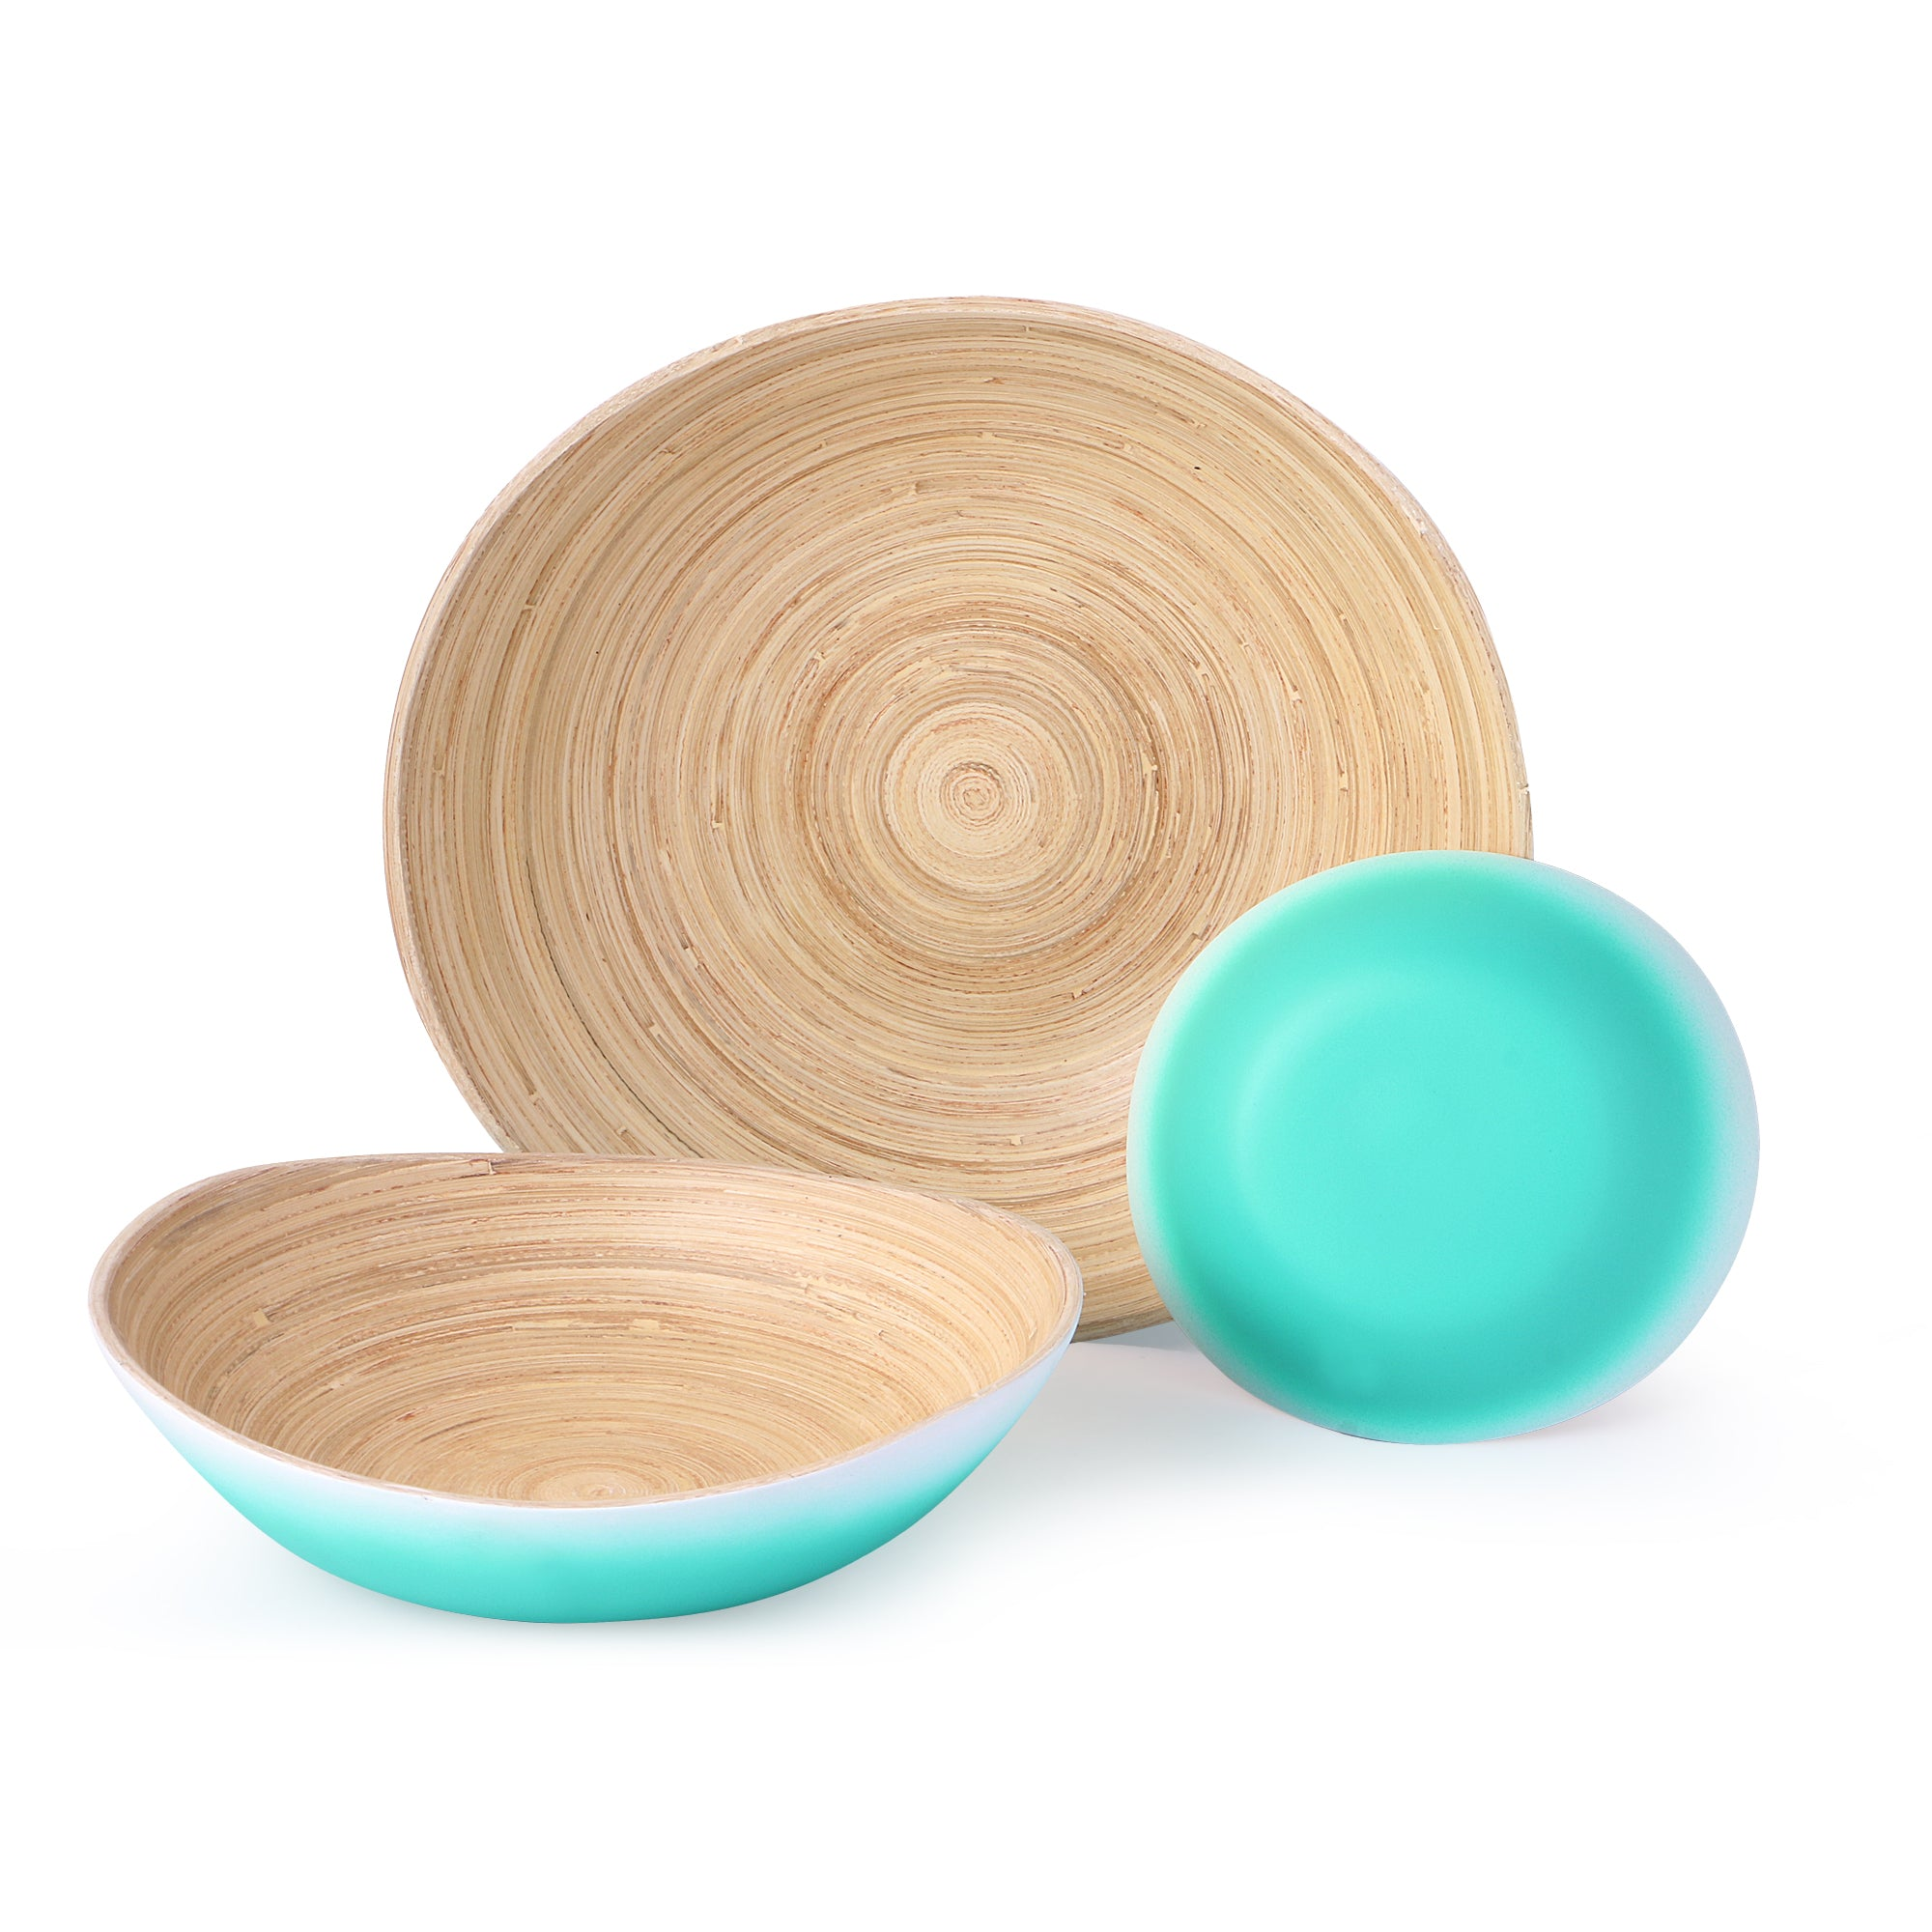 Bamboo Bowls- Matte Green & White Ombré (Set Of 3)